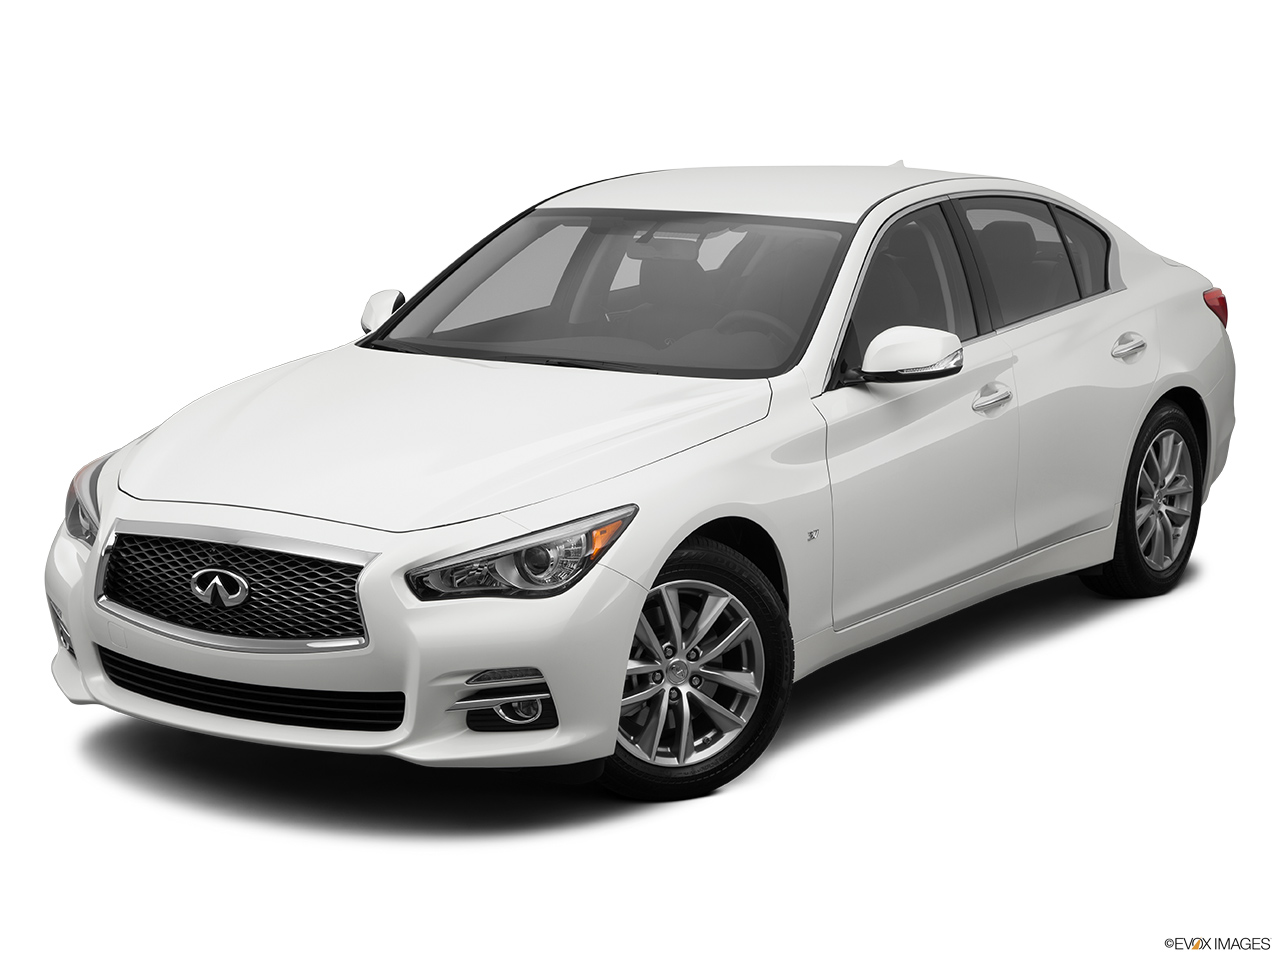 2014 infiniti q50 sedan awd. Black Bedroom Furniture Sets. Home Design Ideas